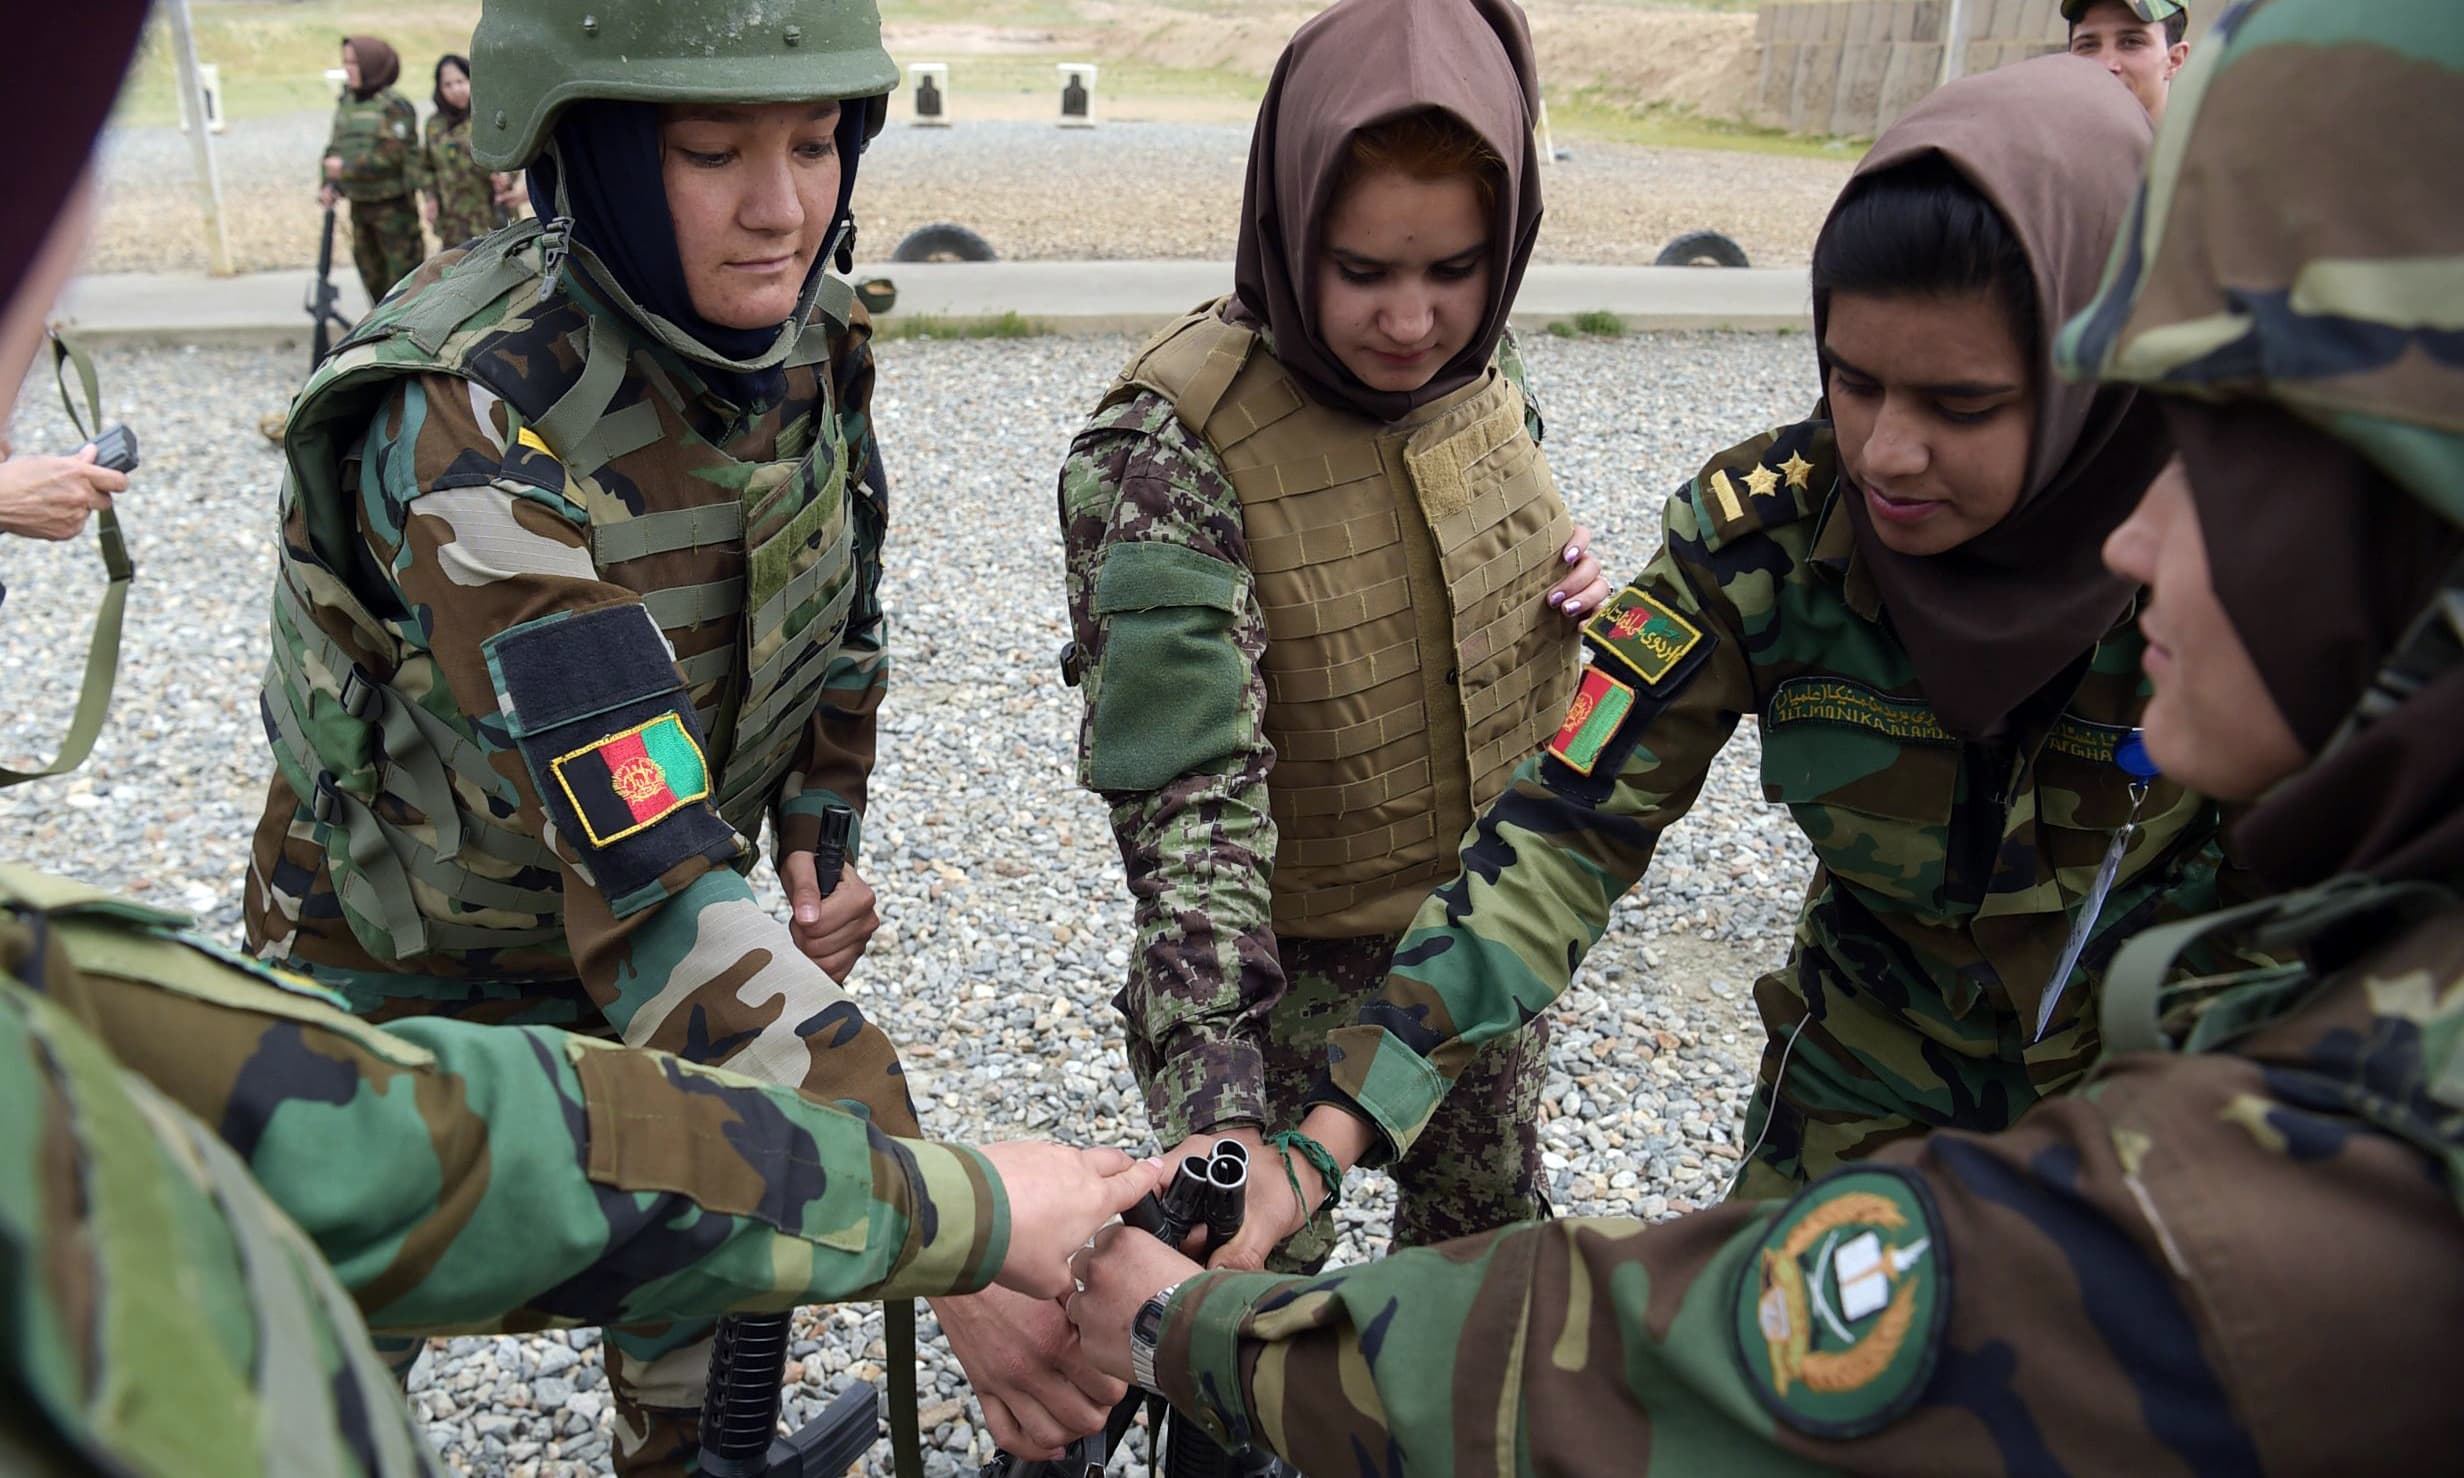 Female soldiers get their rifles at a range during a live firing exercise at the Kabul Military training centre on the outskirts of Kabul. —AFP